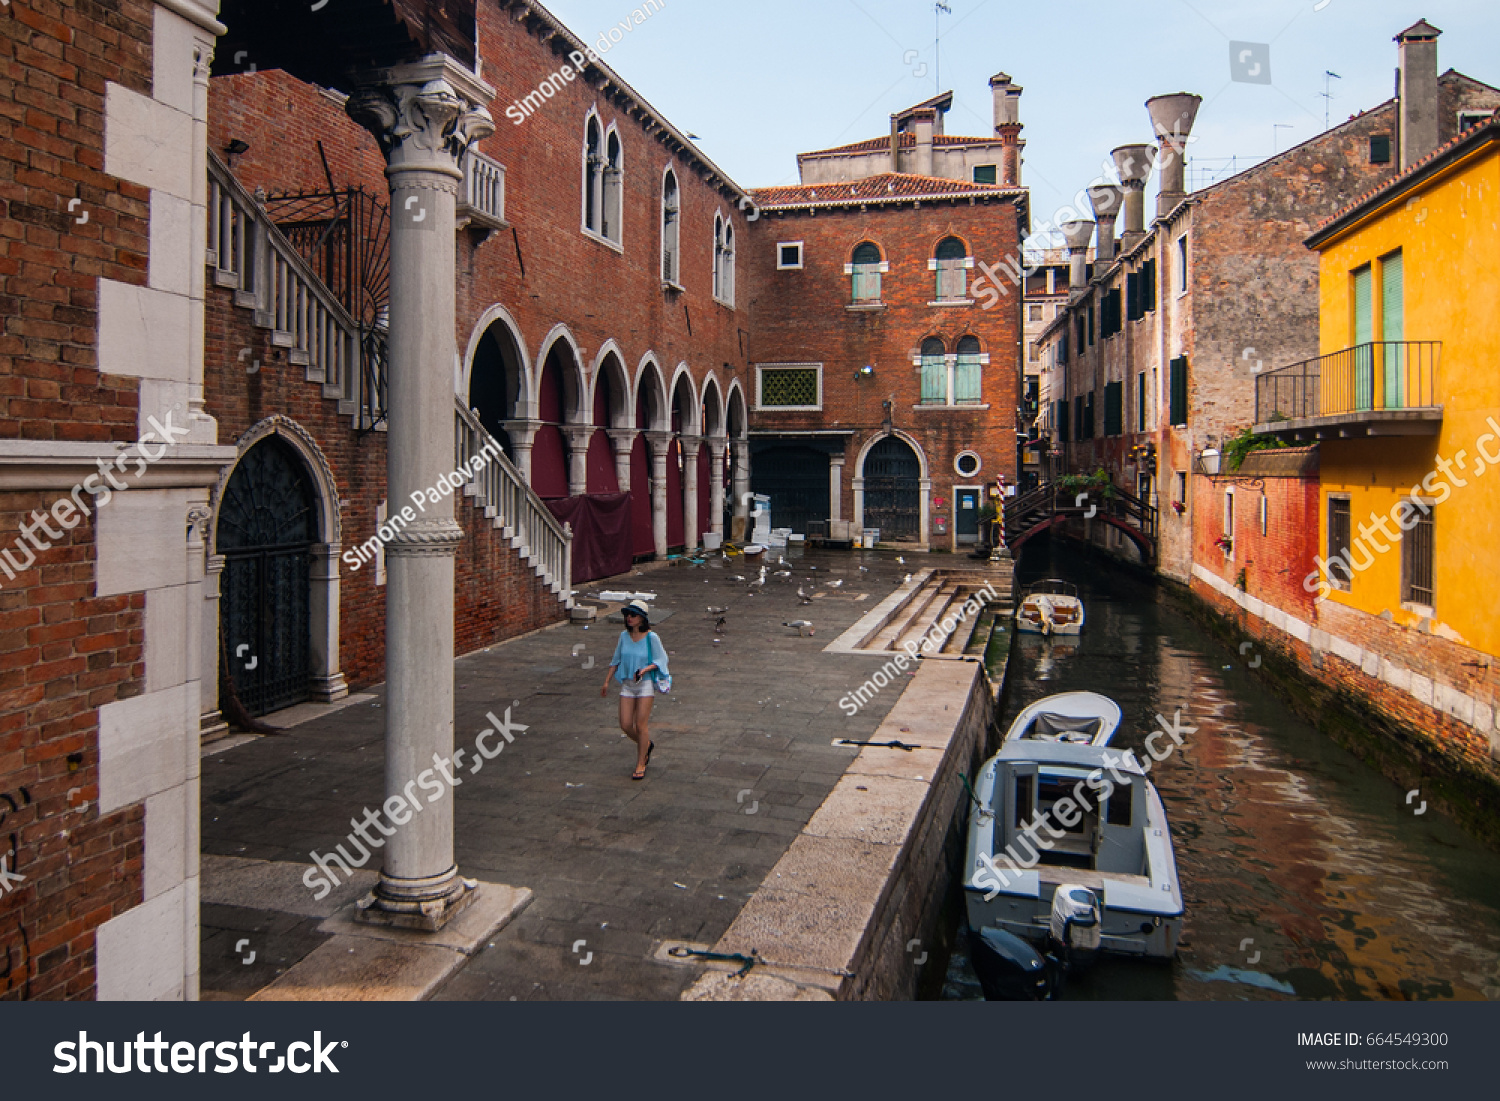 Small Canals In Venice Italian Venezia Venetian Venexia Is A City Northern Italy Known Both For Tourism And Industry The Capital Of